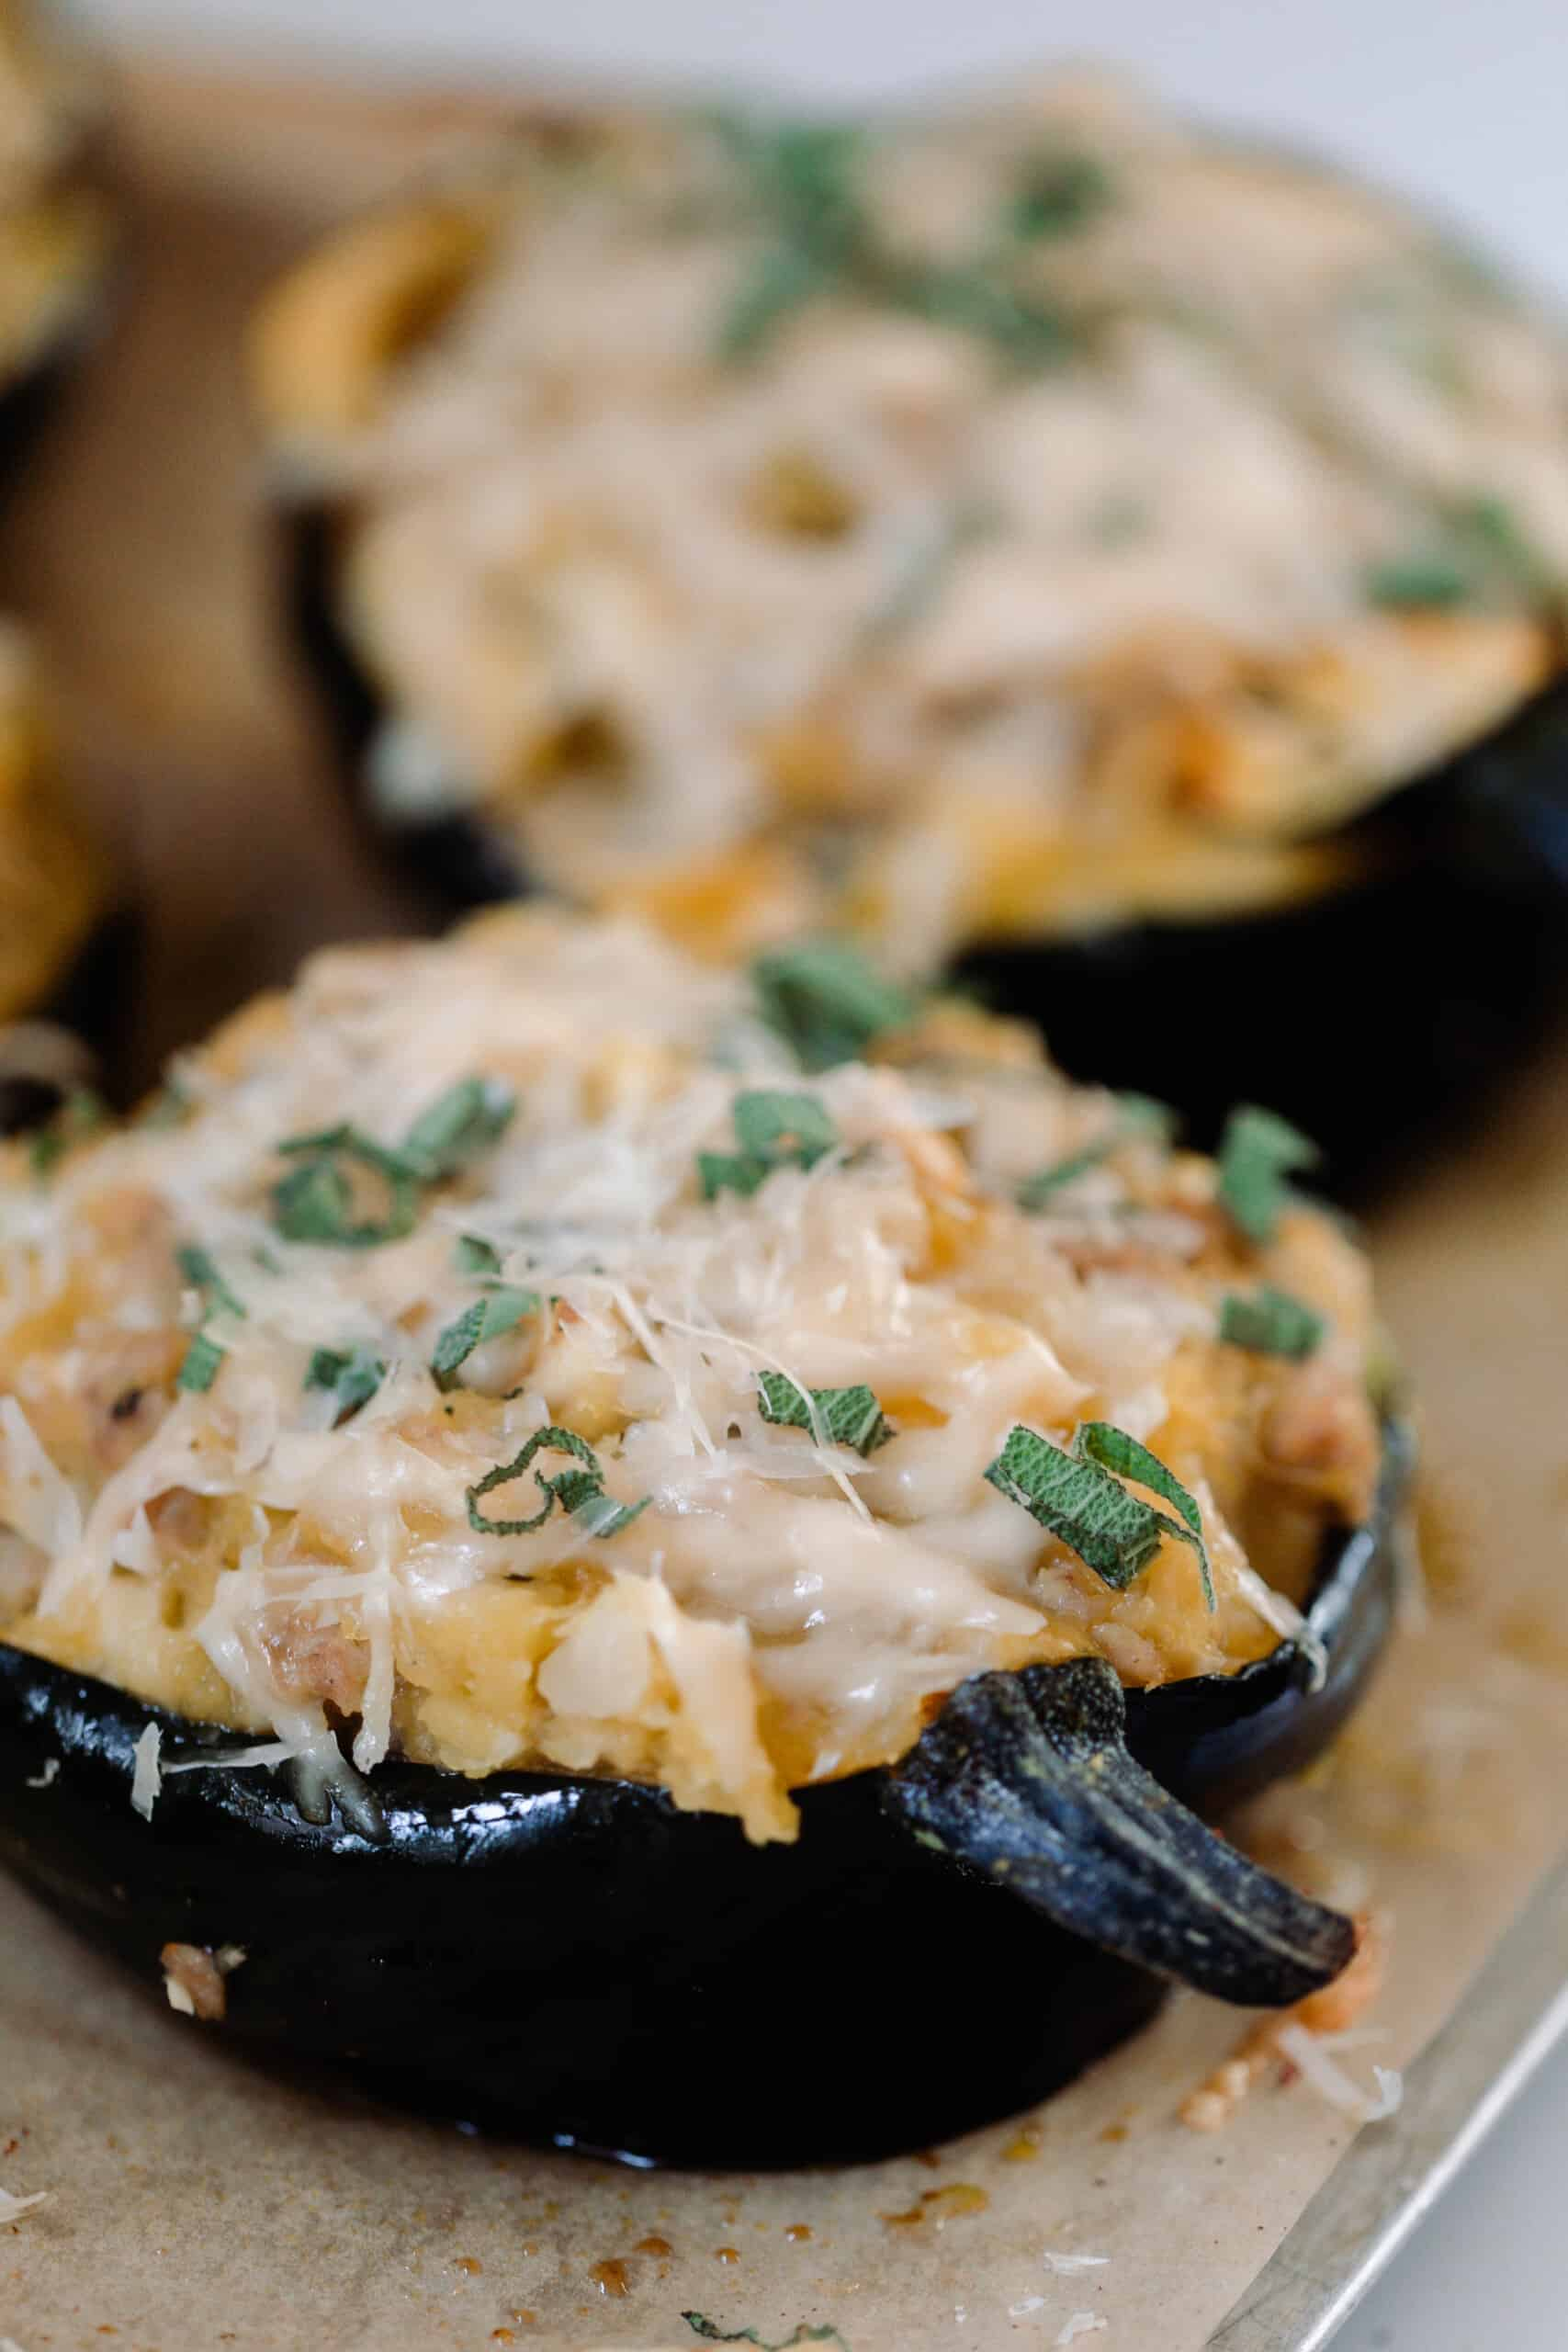 two stuffed acorn squashes topped with cheese on a wood cutting board